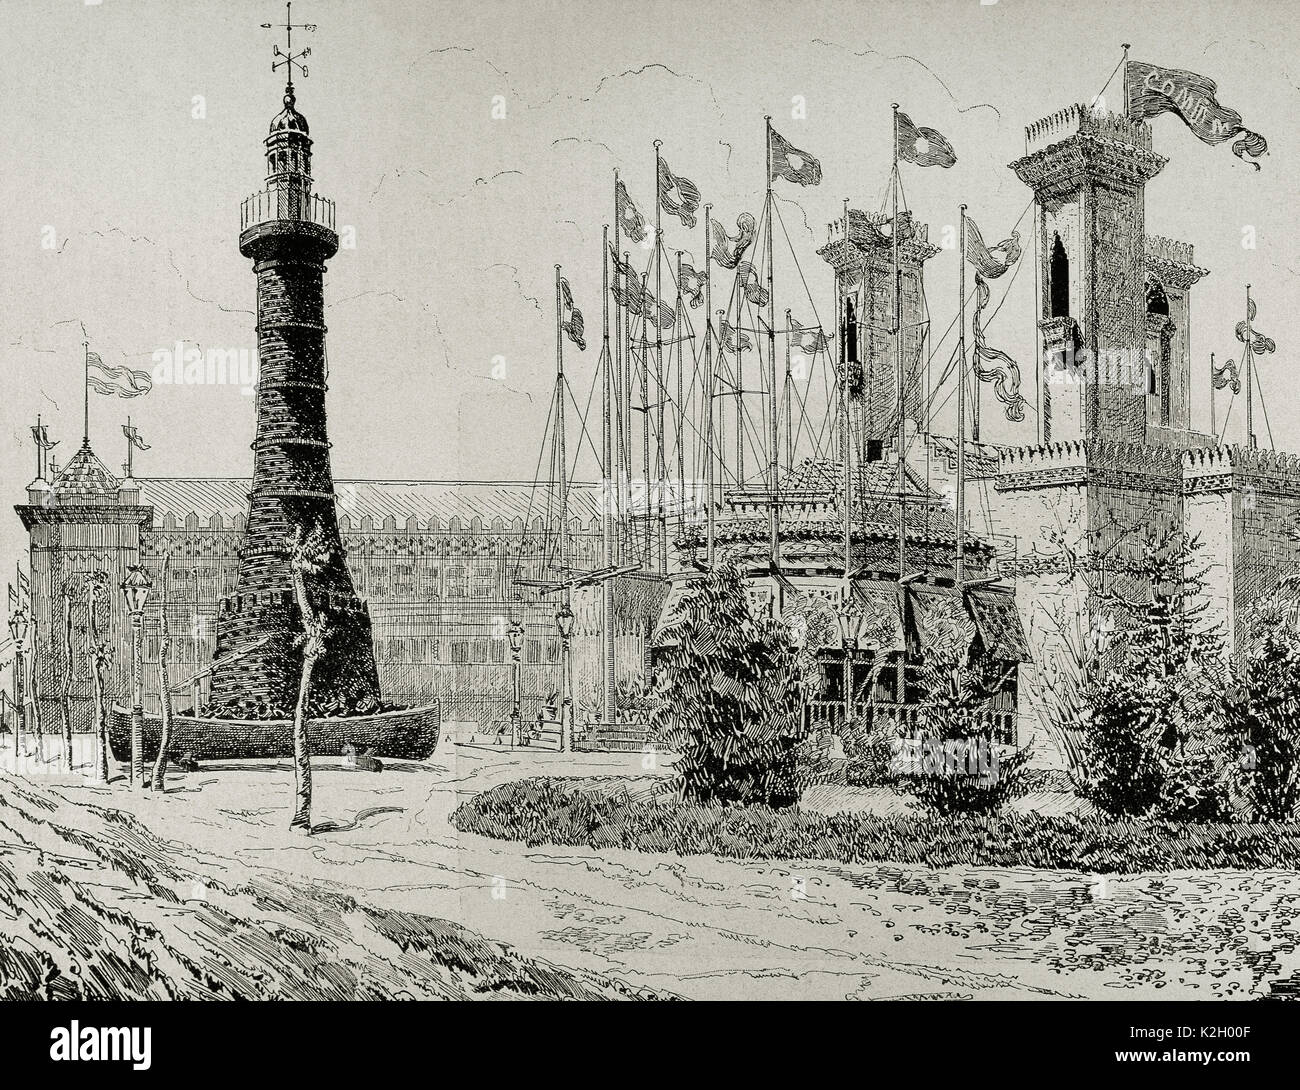 Spain. Catalonia. 1888 Barcelona Universal Exposition. Gallery of maritime installations: stone charcoal lighthouse - Stock Image